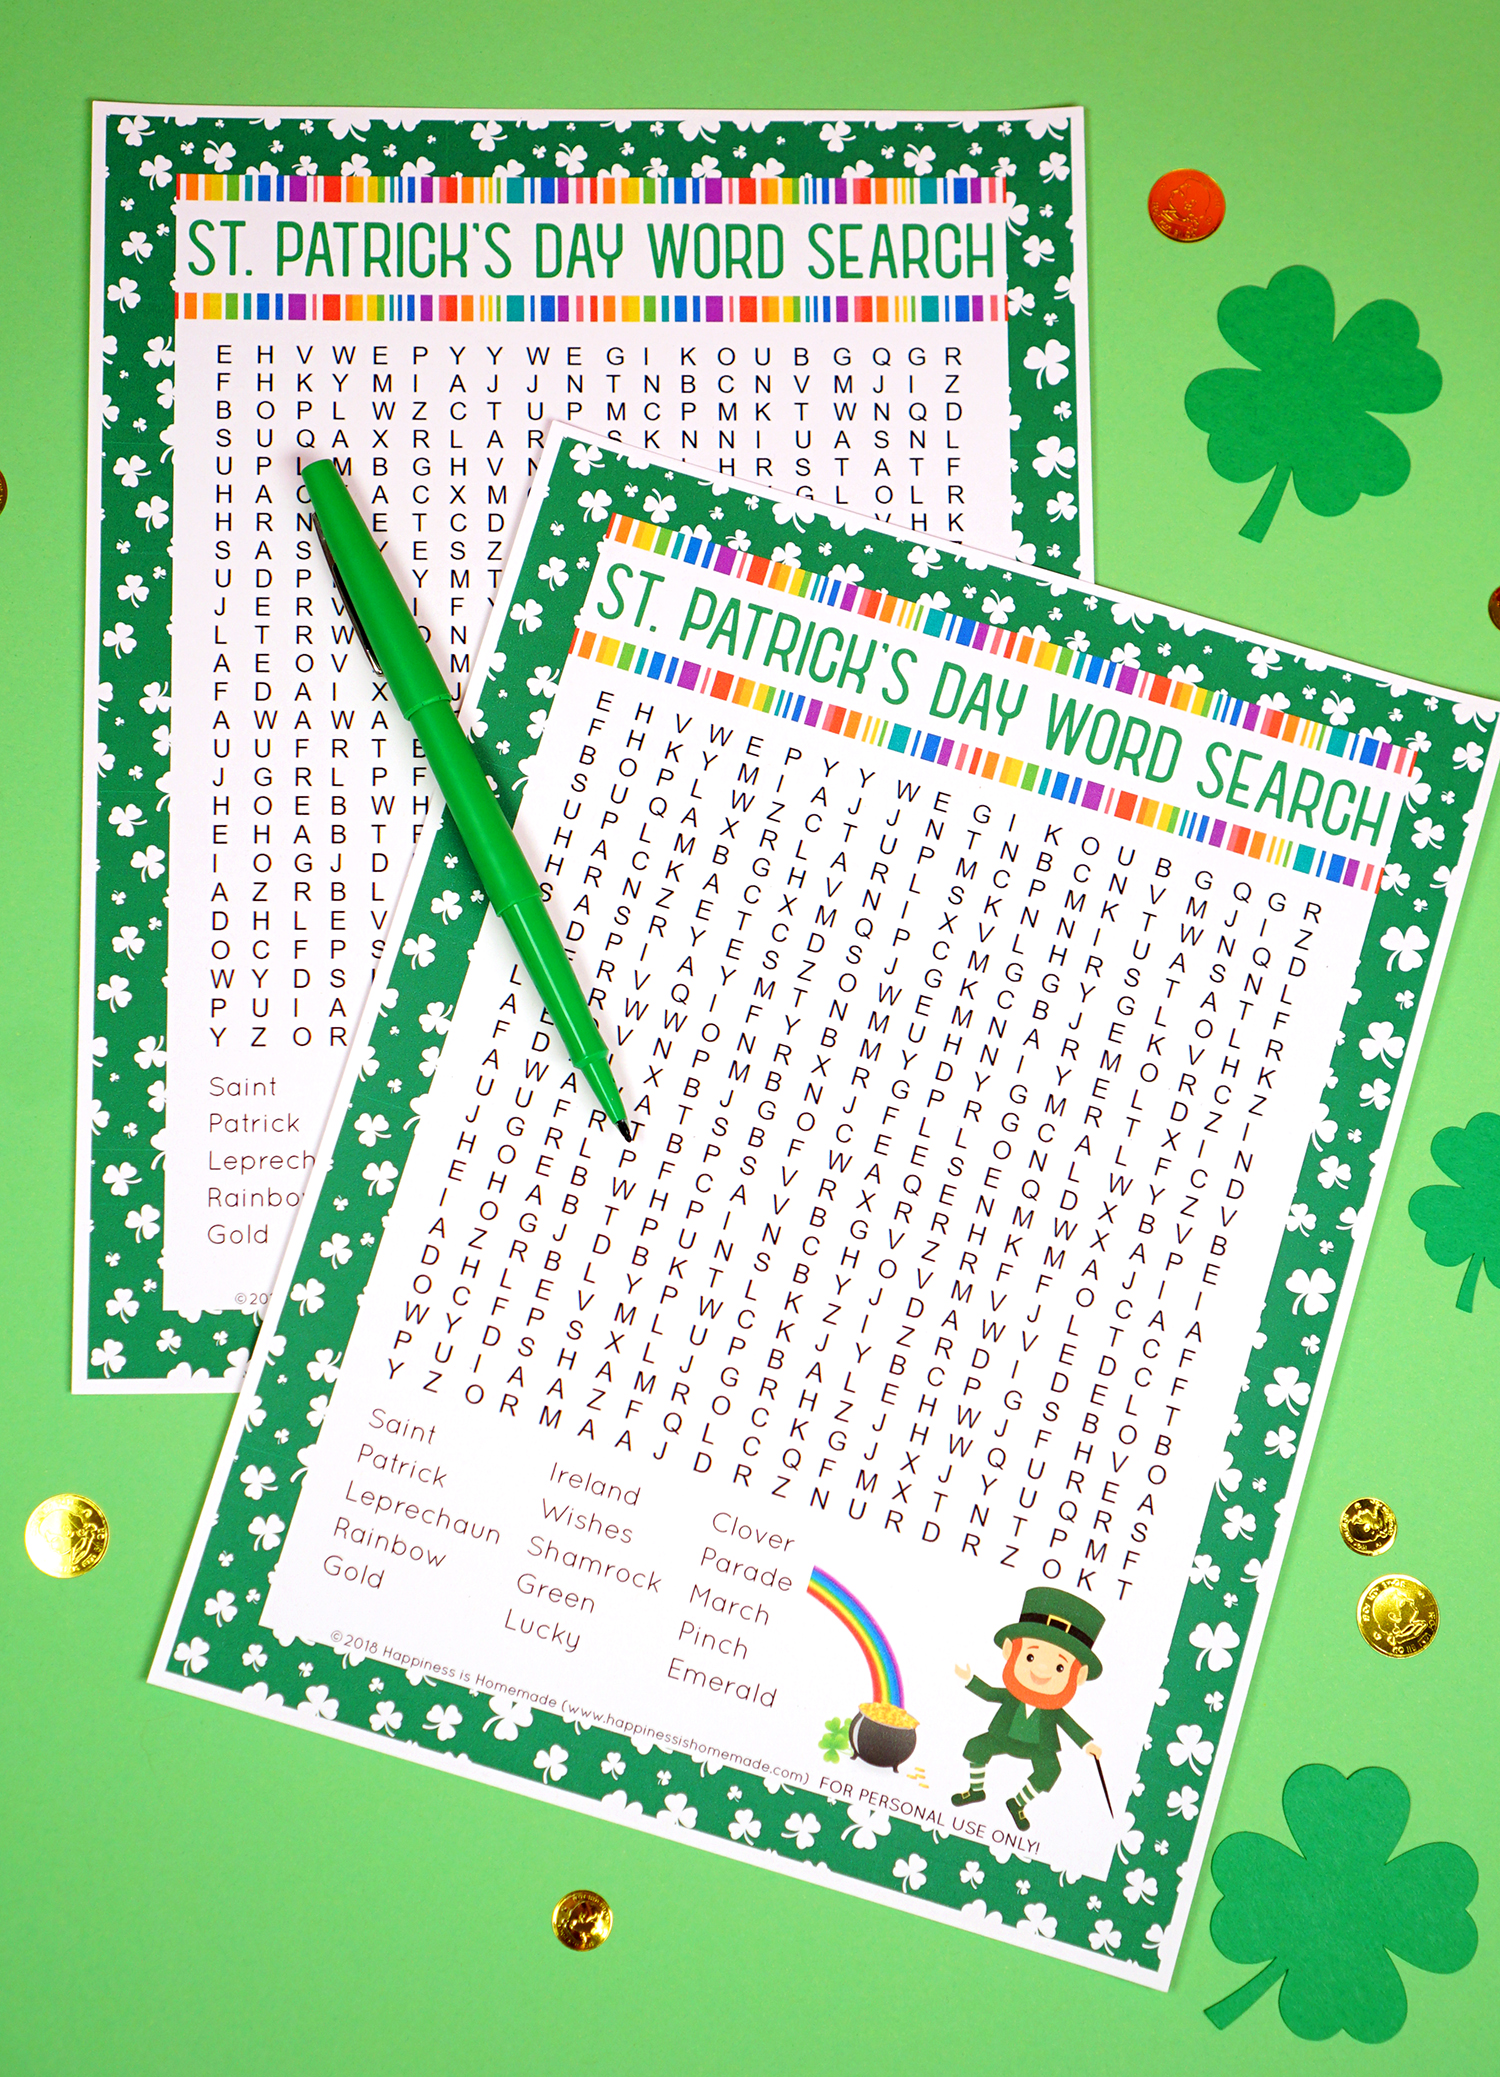 graphic about St Patrick Day Trivia Questions and Answers Printable named St. Patricks Working day Term Appear Printable - Pleasure is Handmade